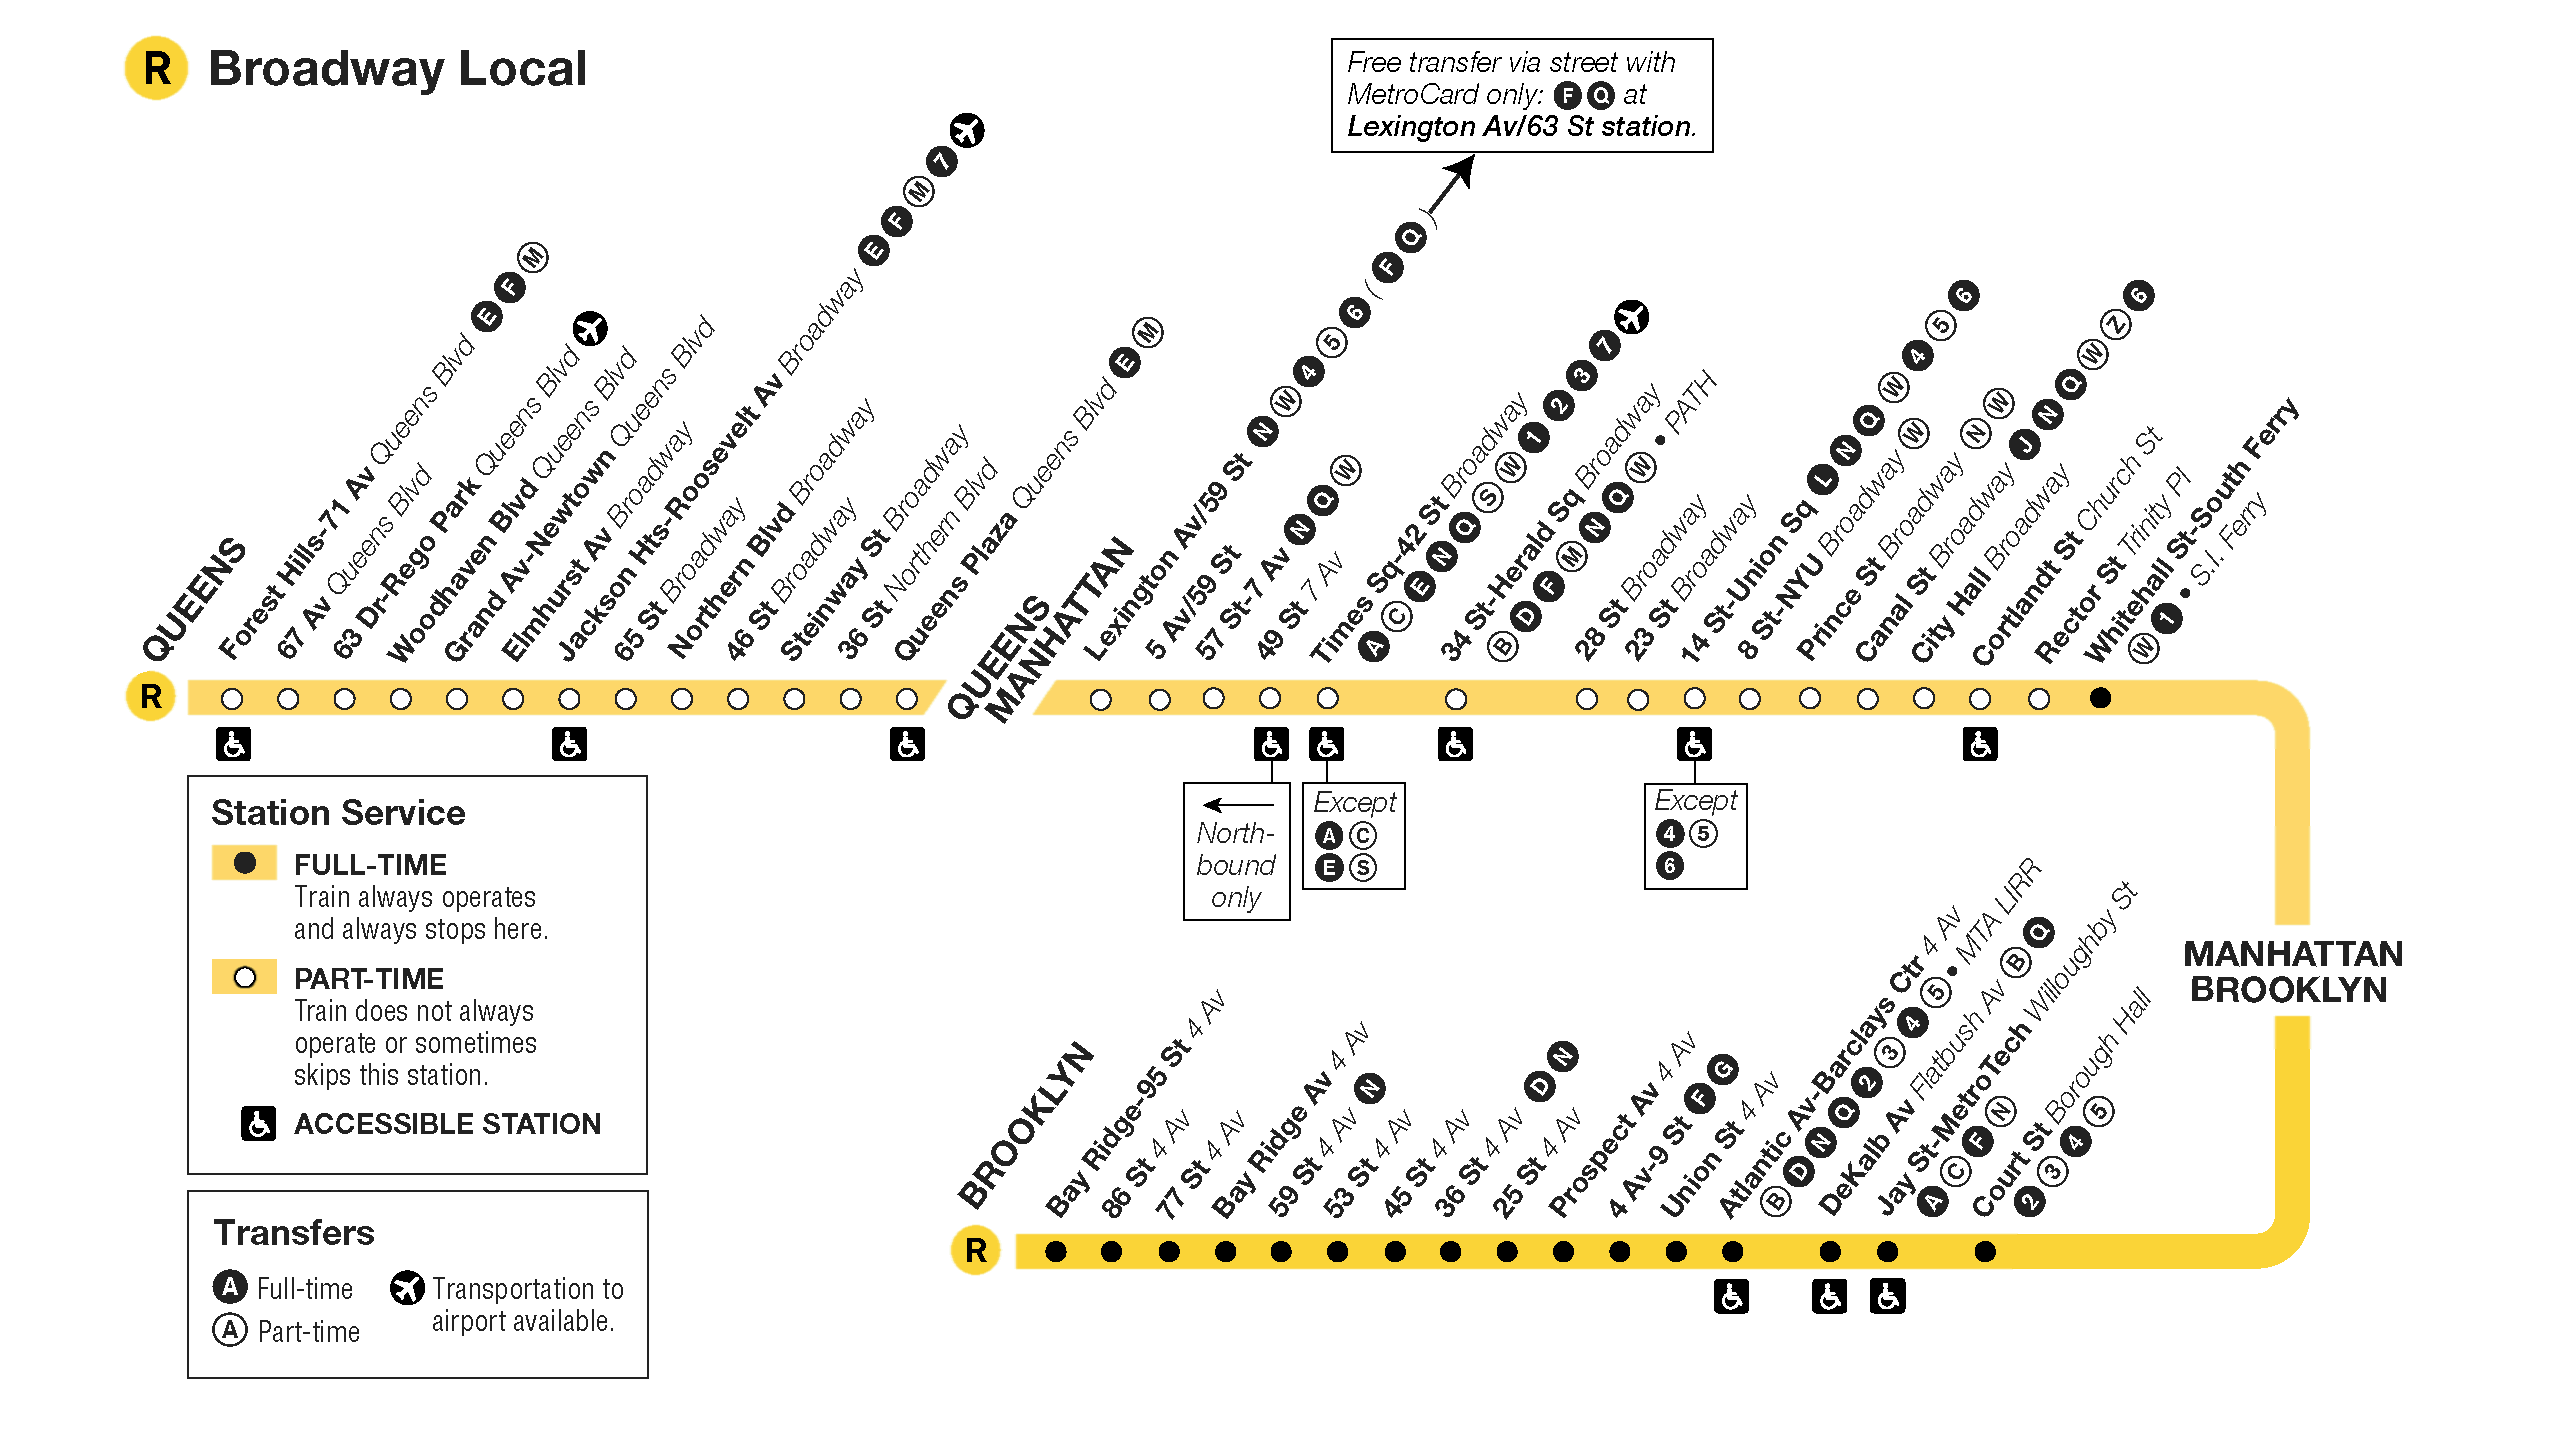 nyc-metro-route-r-broadway-local-map